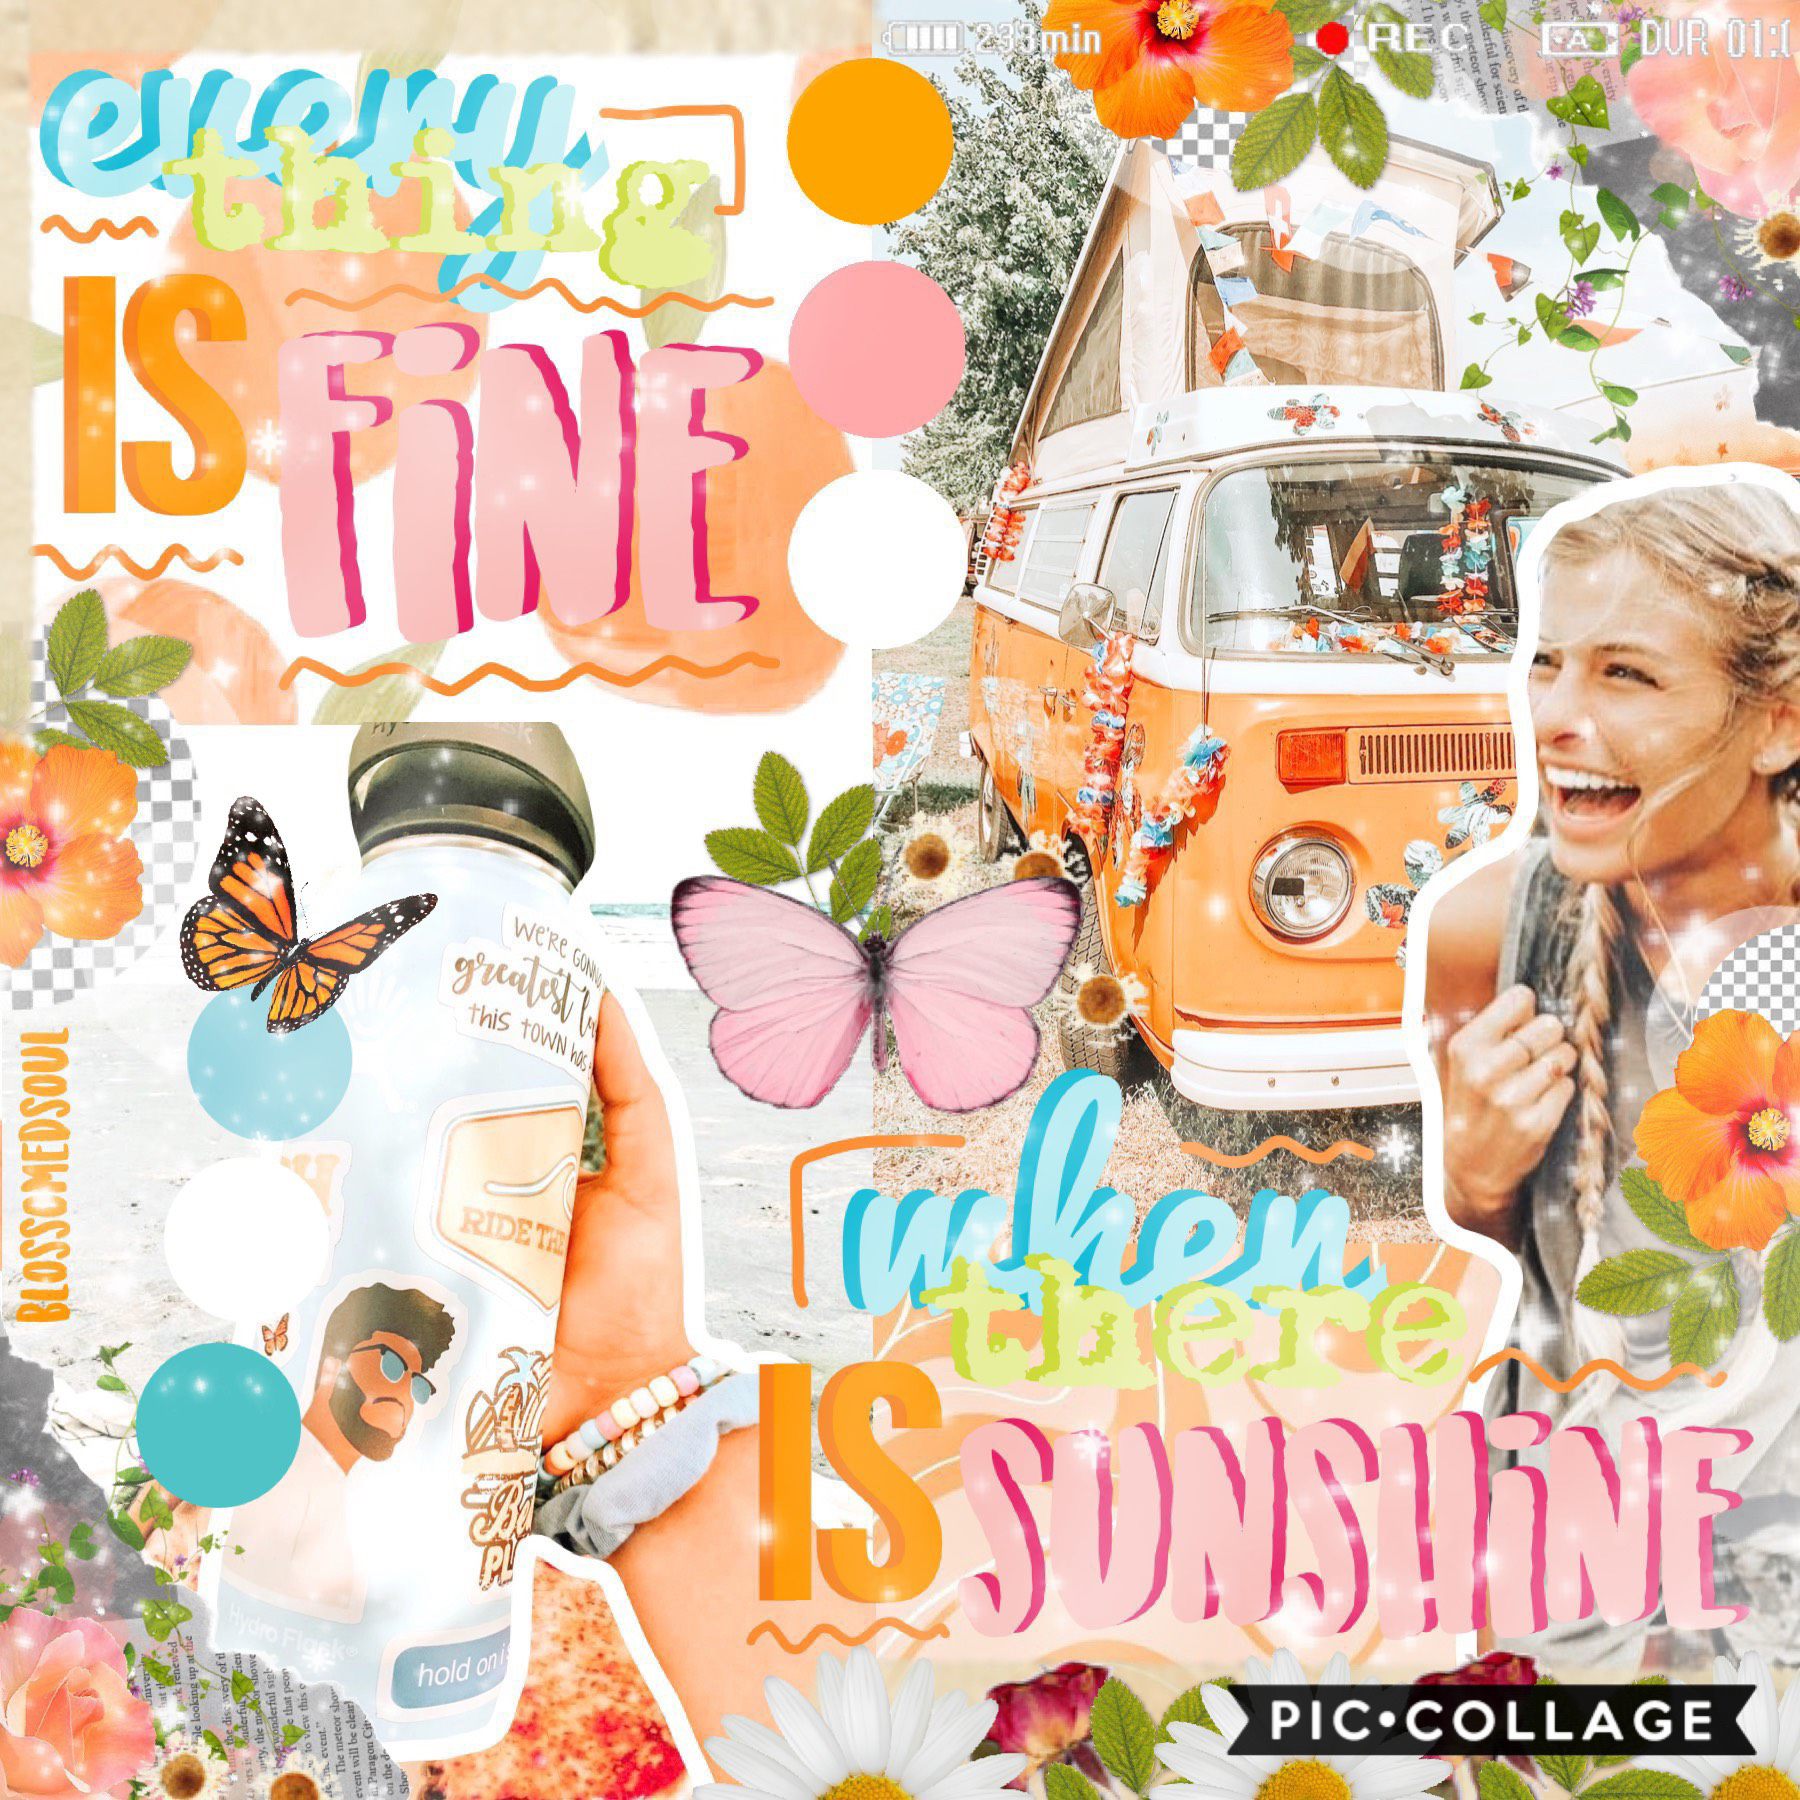 [ t a p ]   finally a post! 🥳💛 haha sorry guys i've just been really out of inspo lately and the only thing really keeping me going was contest themes :) lmk if you have a contest going on, i'd love to enter 🌸💕